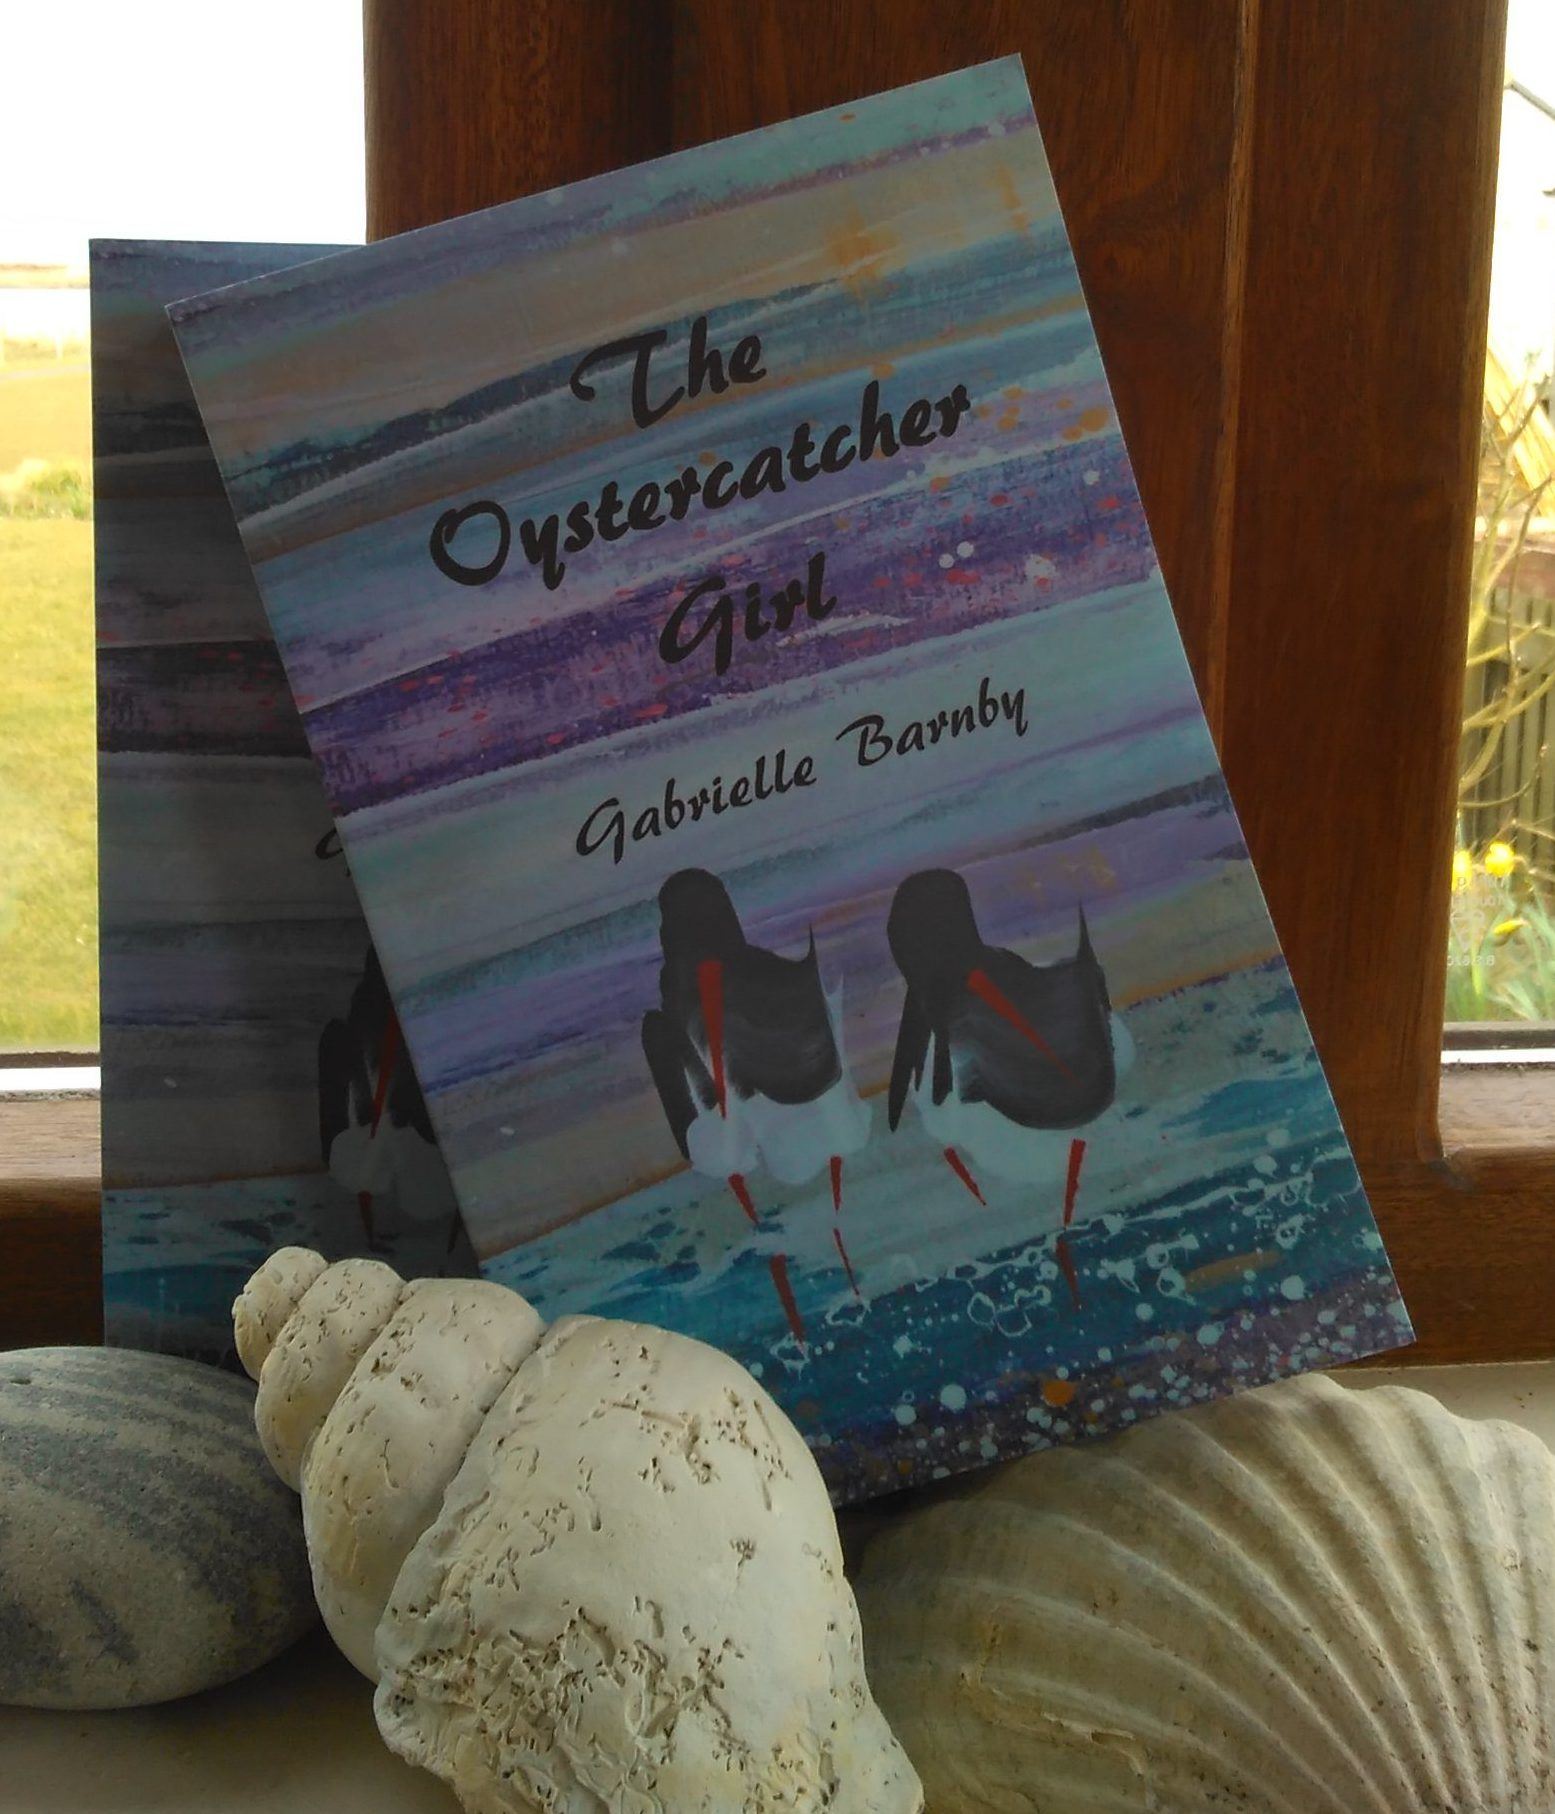 Romance, mystery, Scotland, Islands, Gabrielle Barnby, The Oystercatcher Girl, Orkney, writer, debut, novel, Shirley Whiteside, Booked, Pulse